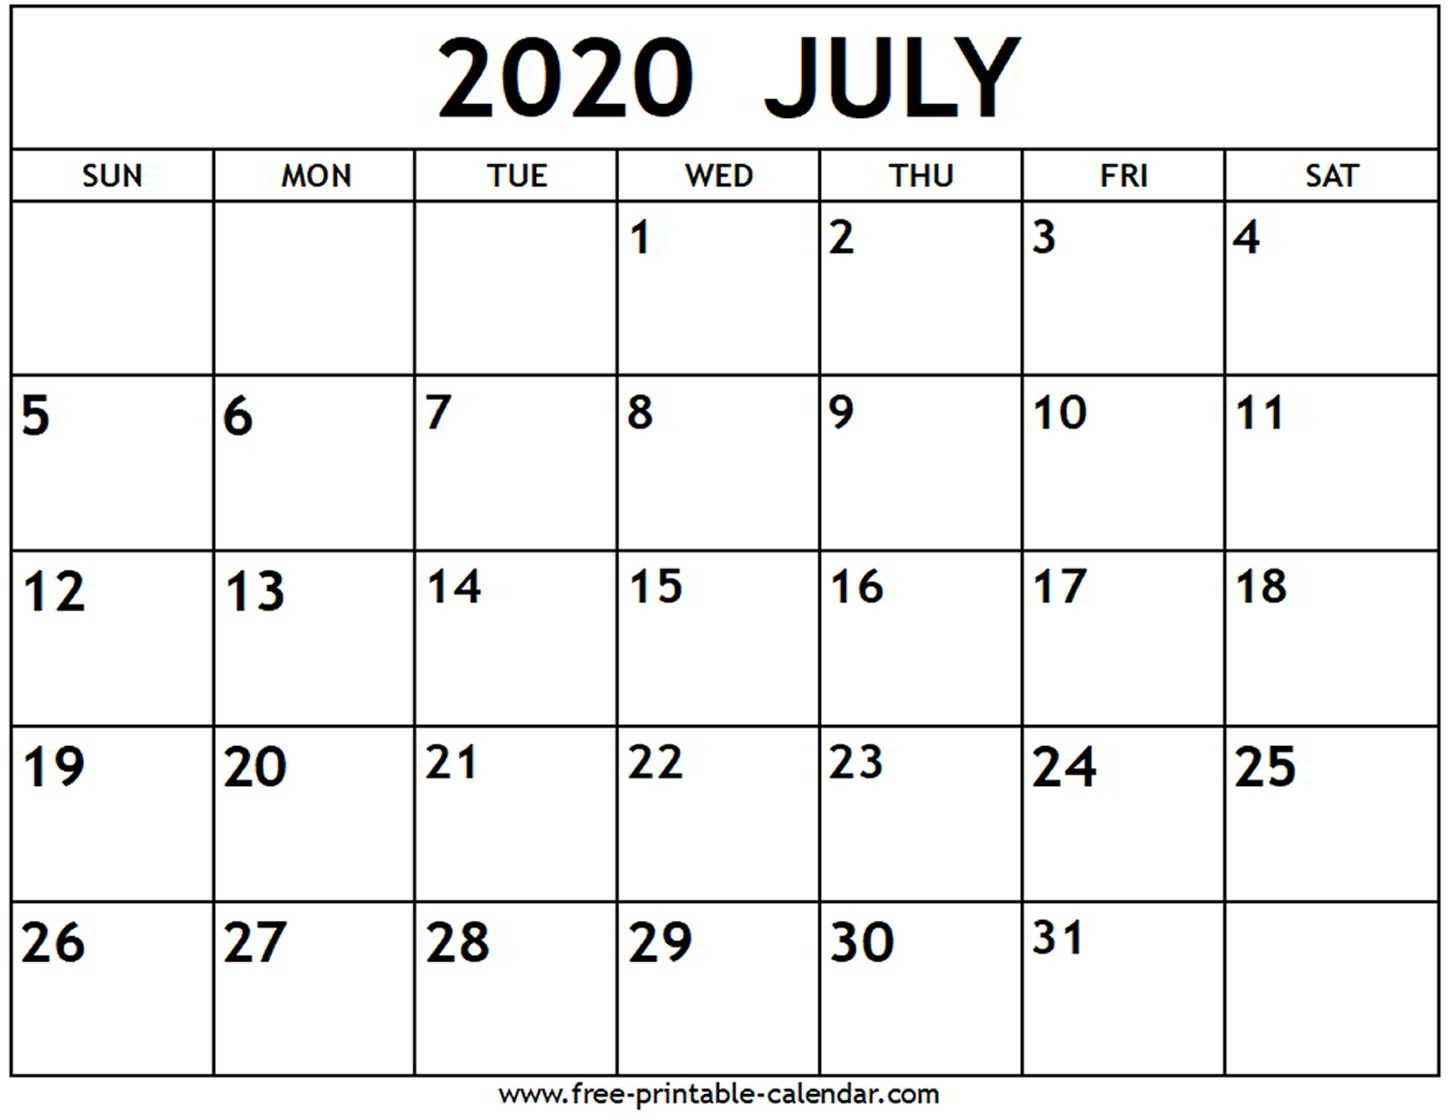 July 2020 Calendar - Free-Printable-Calendar-Blank Calendar 2020 June July August